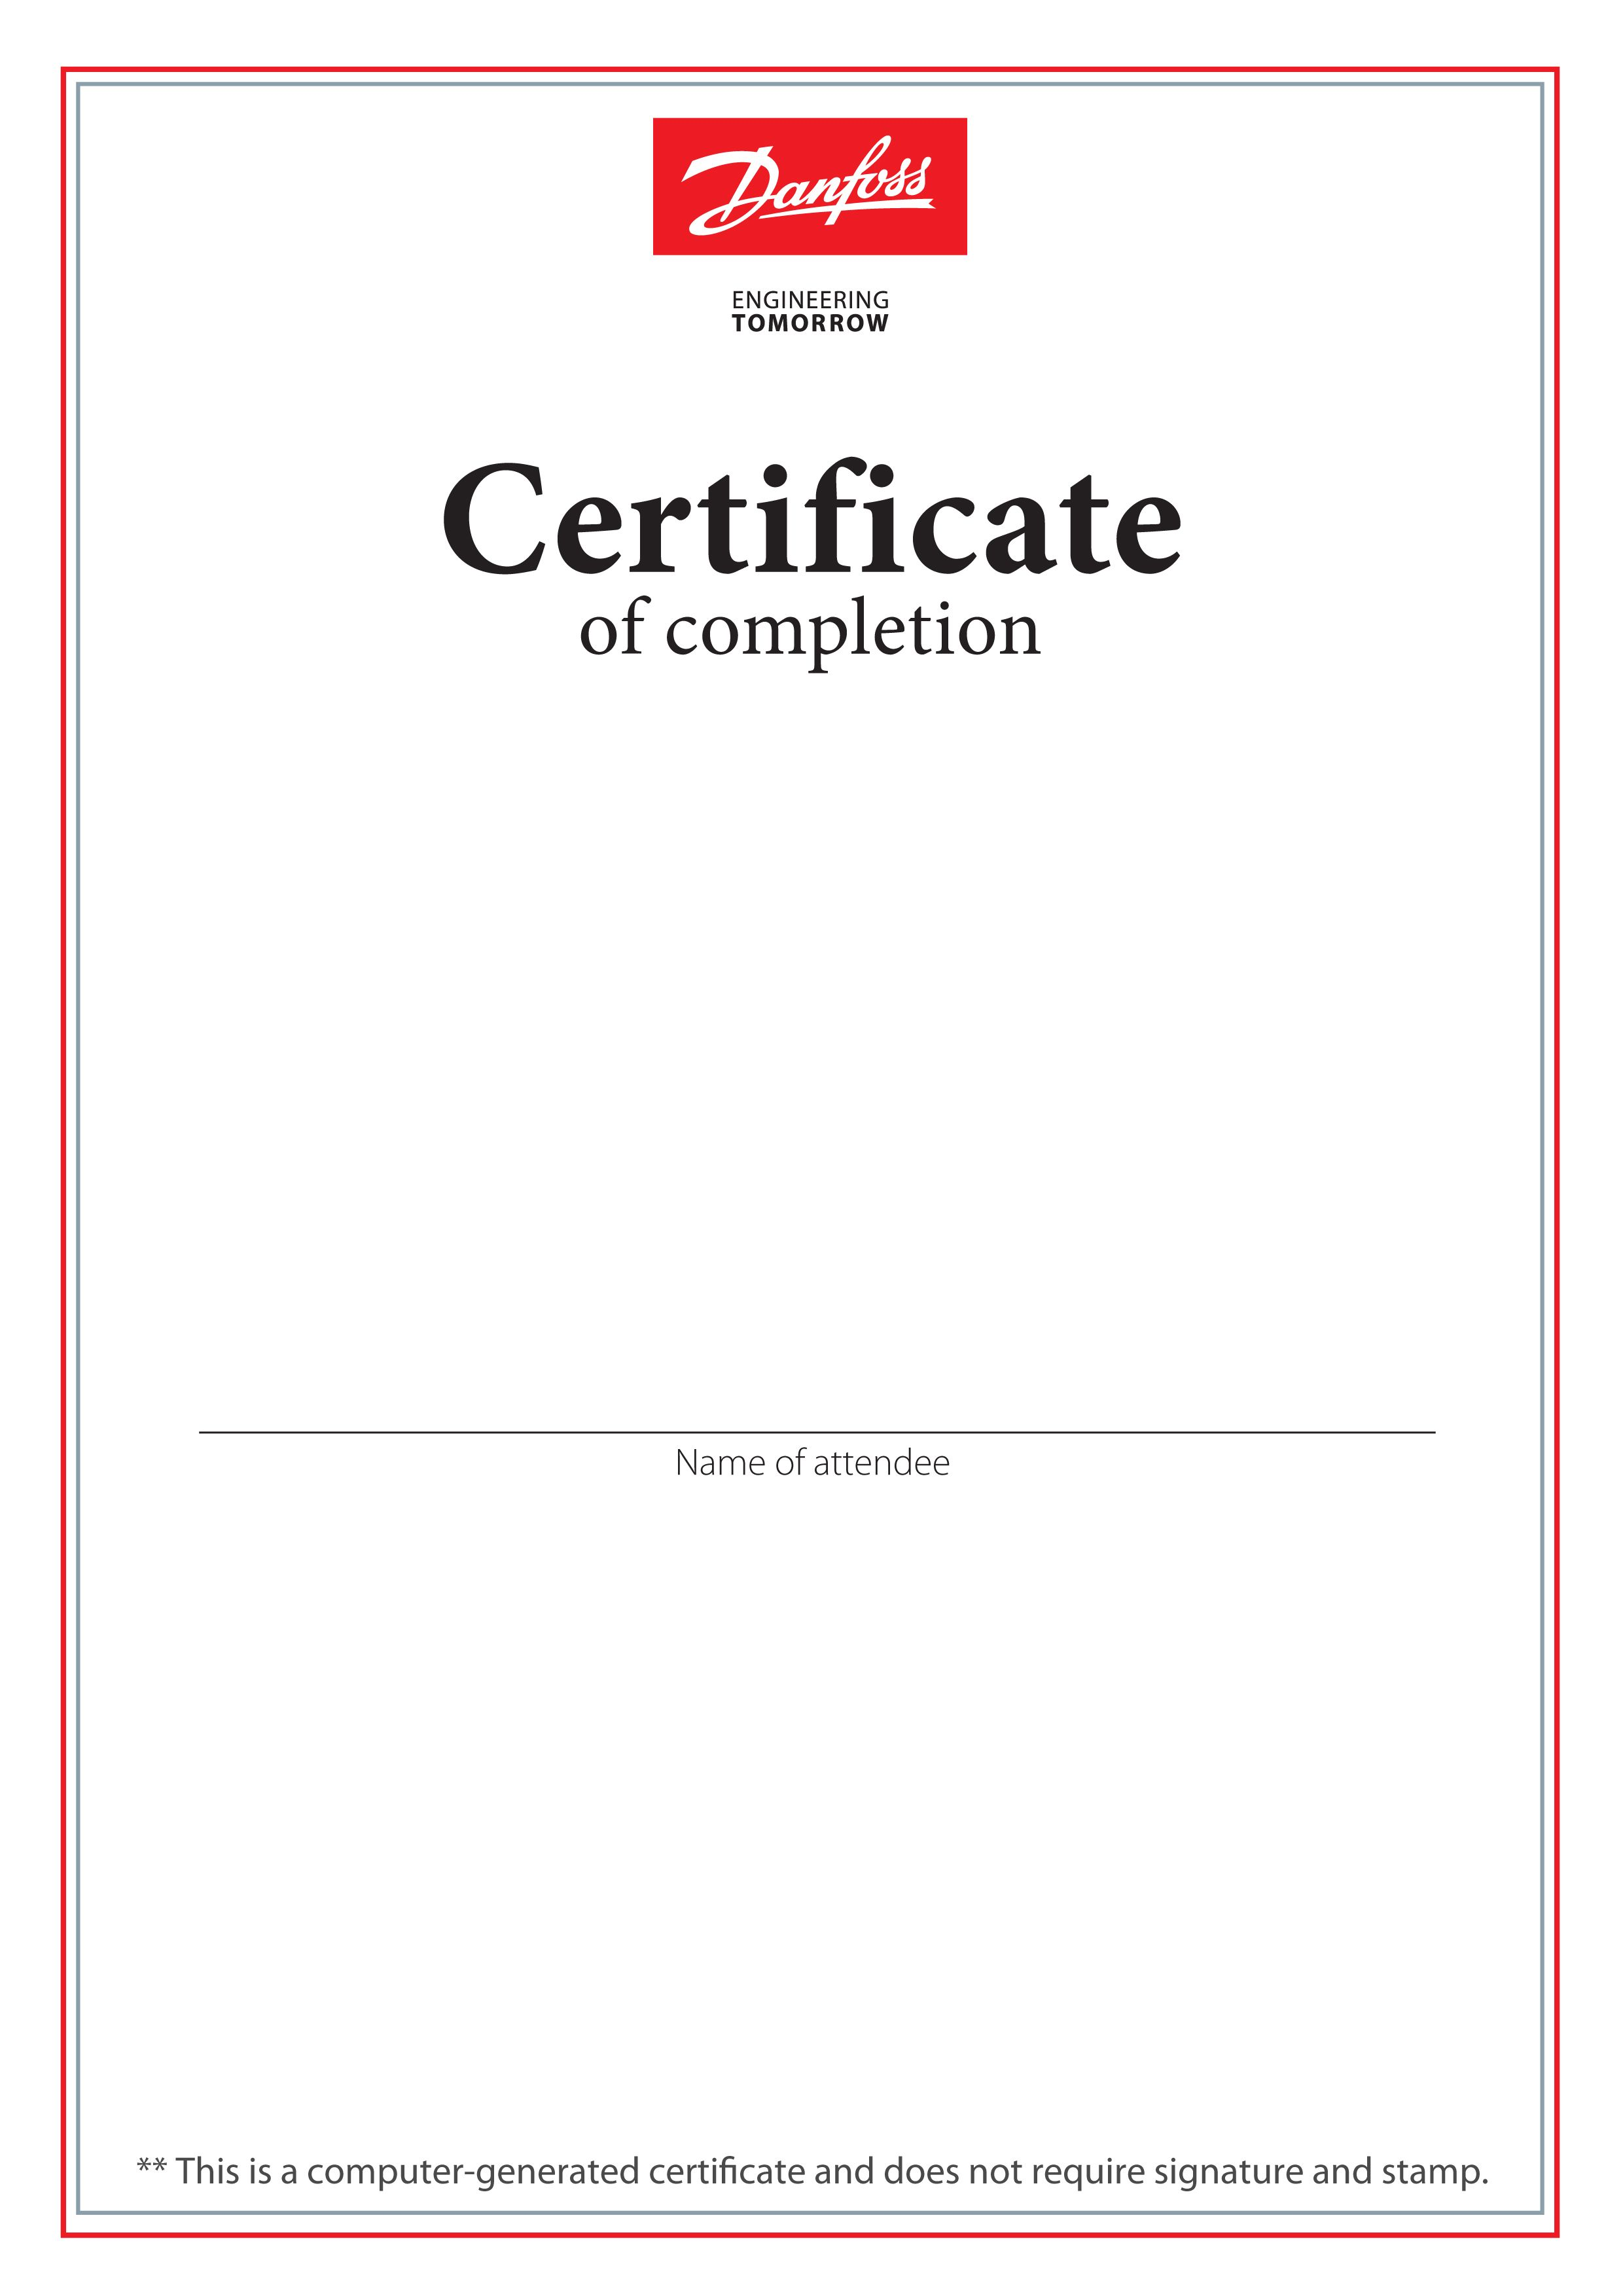 Certificate Certificate of completion, Certificate, Names